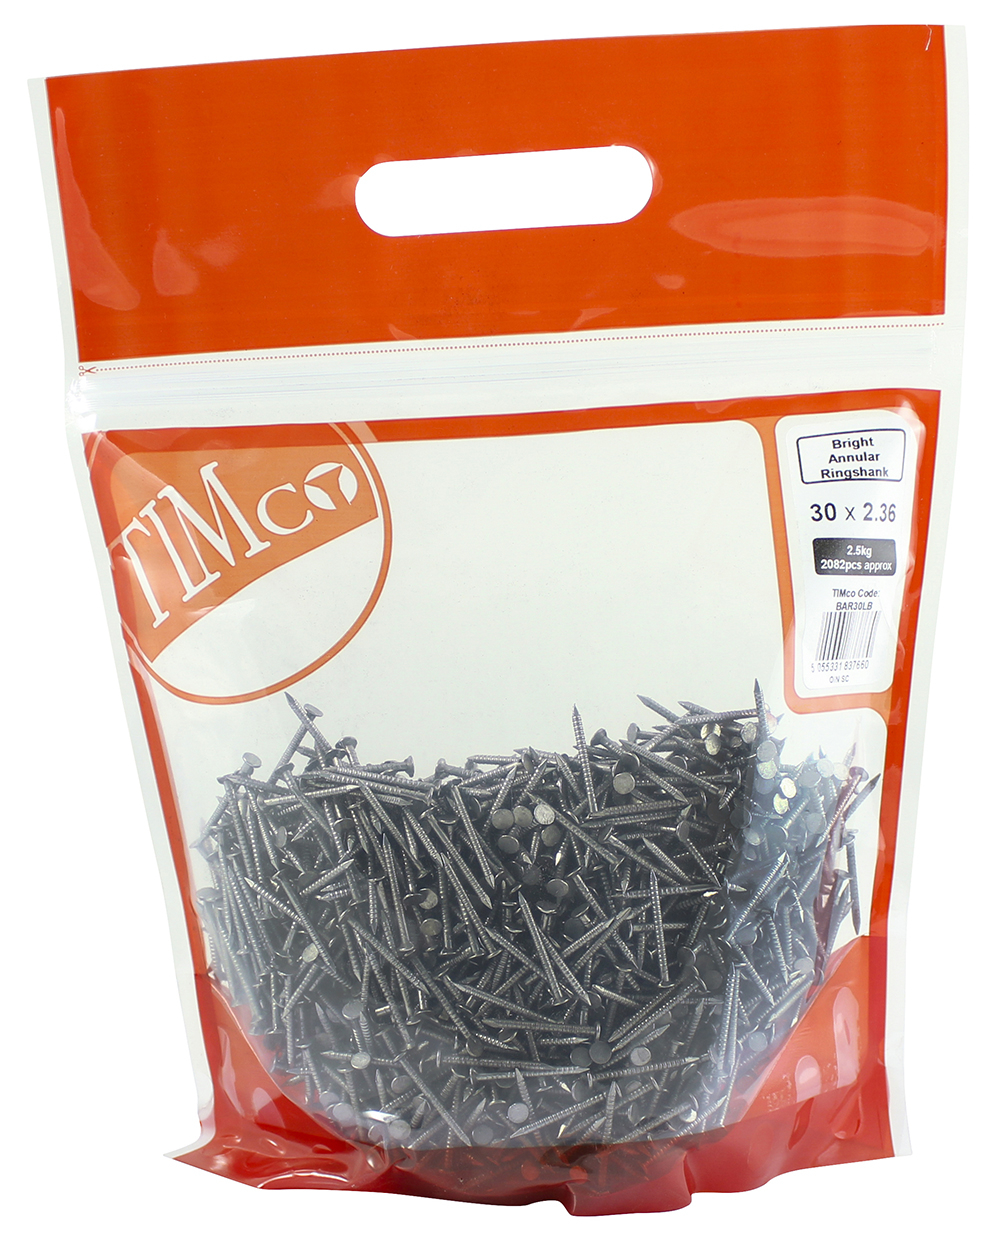 TIMco 30 x 2.36 Annular Ringshank Nail -Bright 2.5 kg Bag